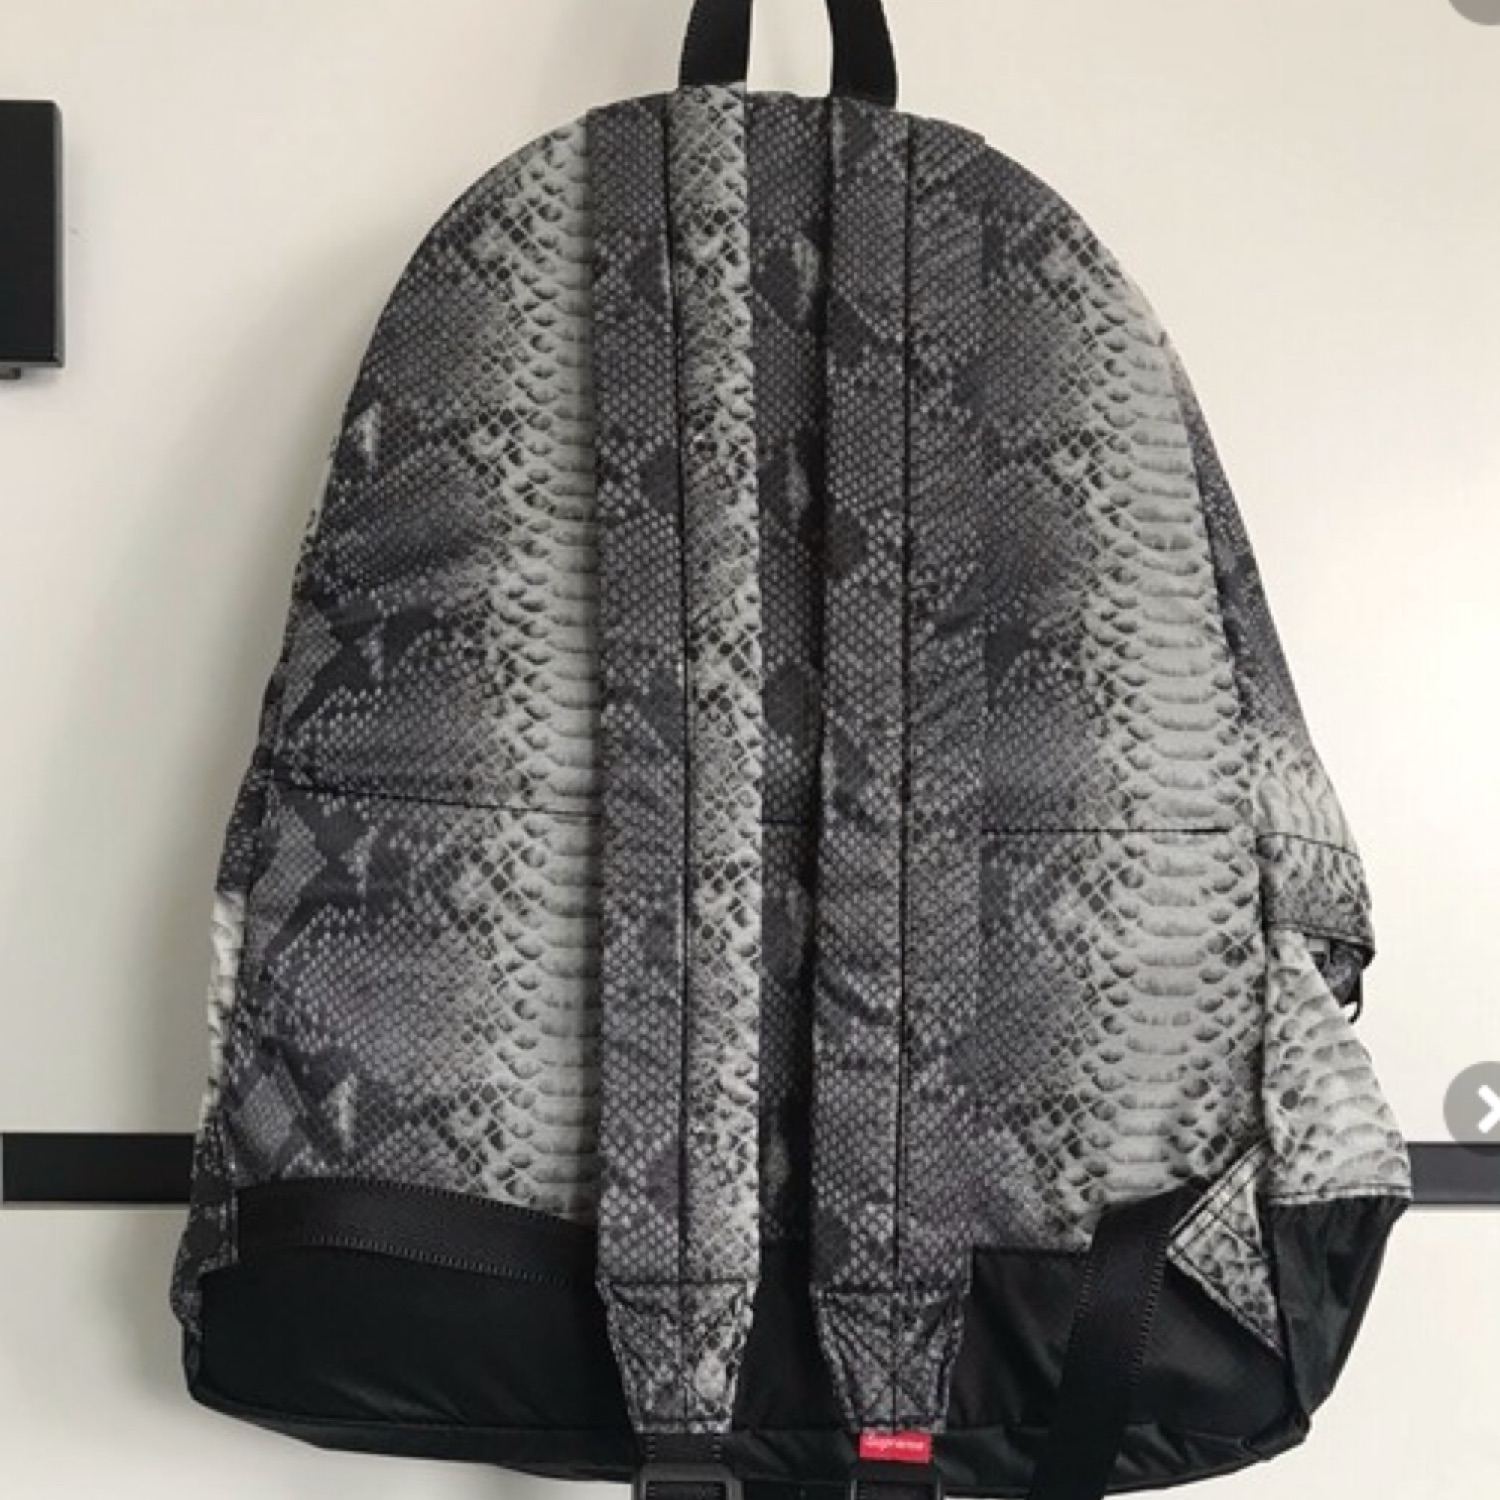 7f38cd494 Supreme X The North Face Backpack Snakeskin Bnwt